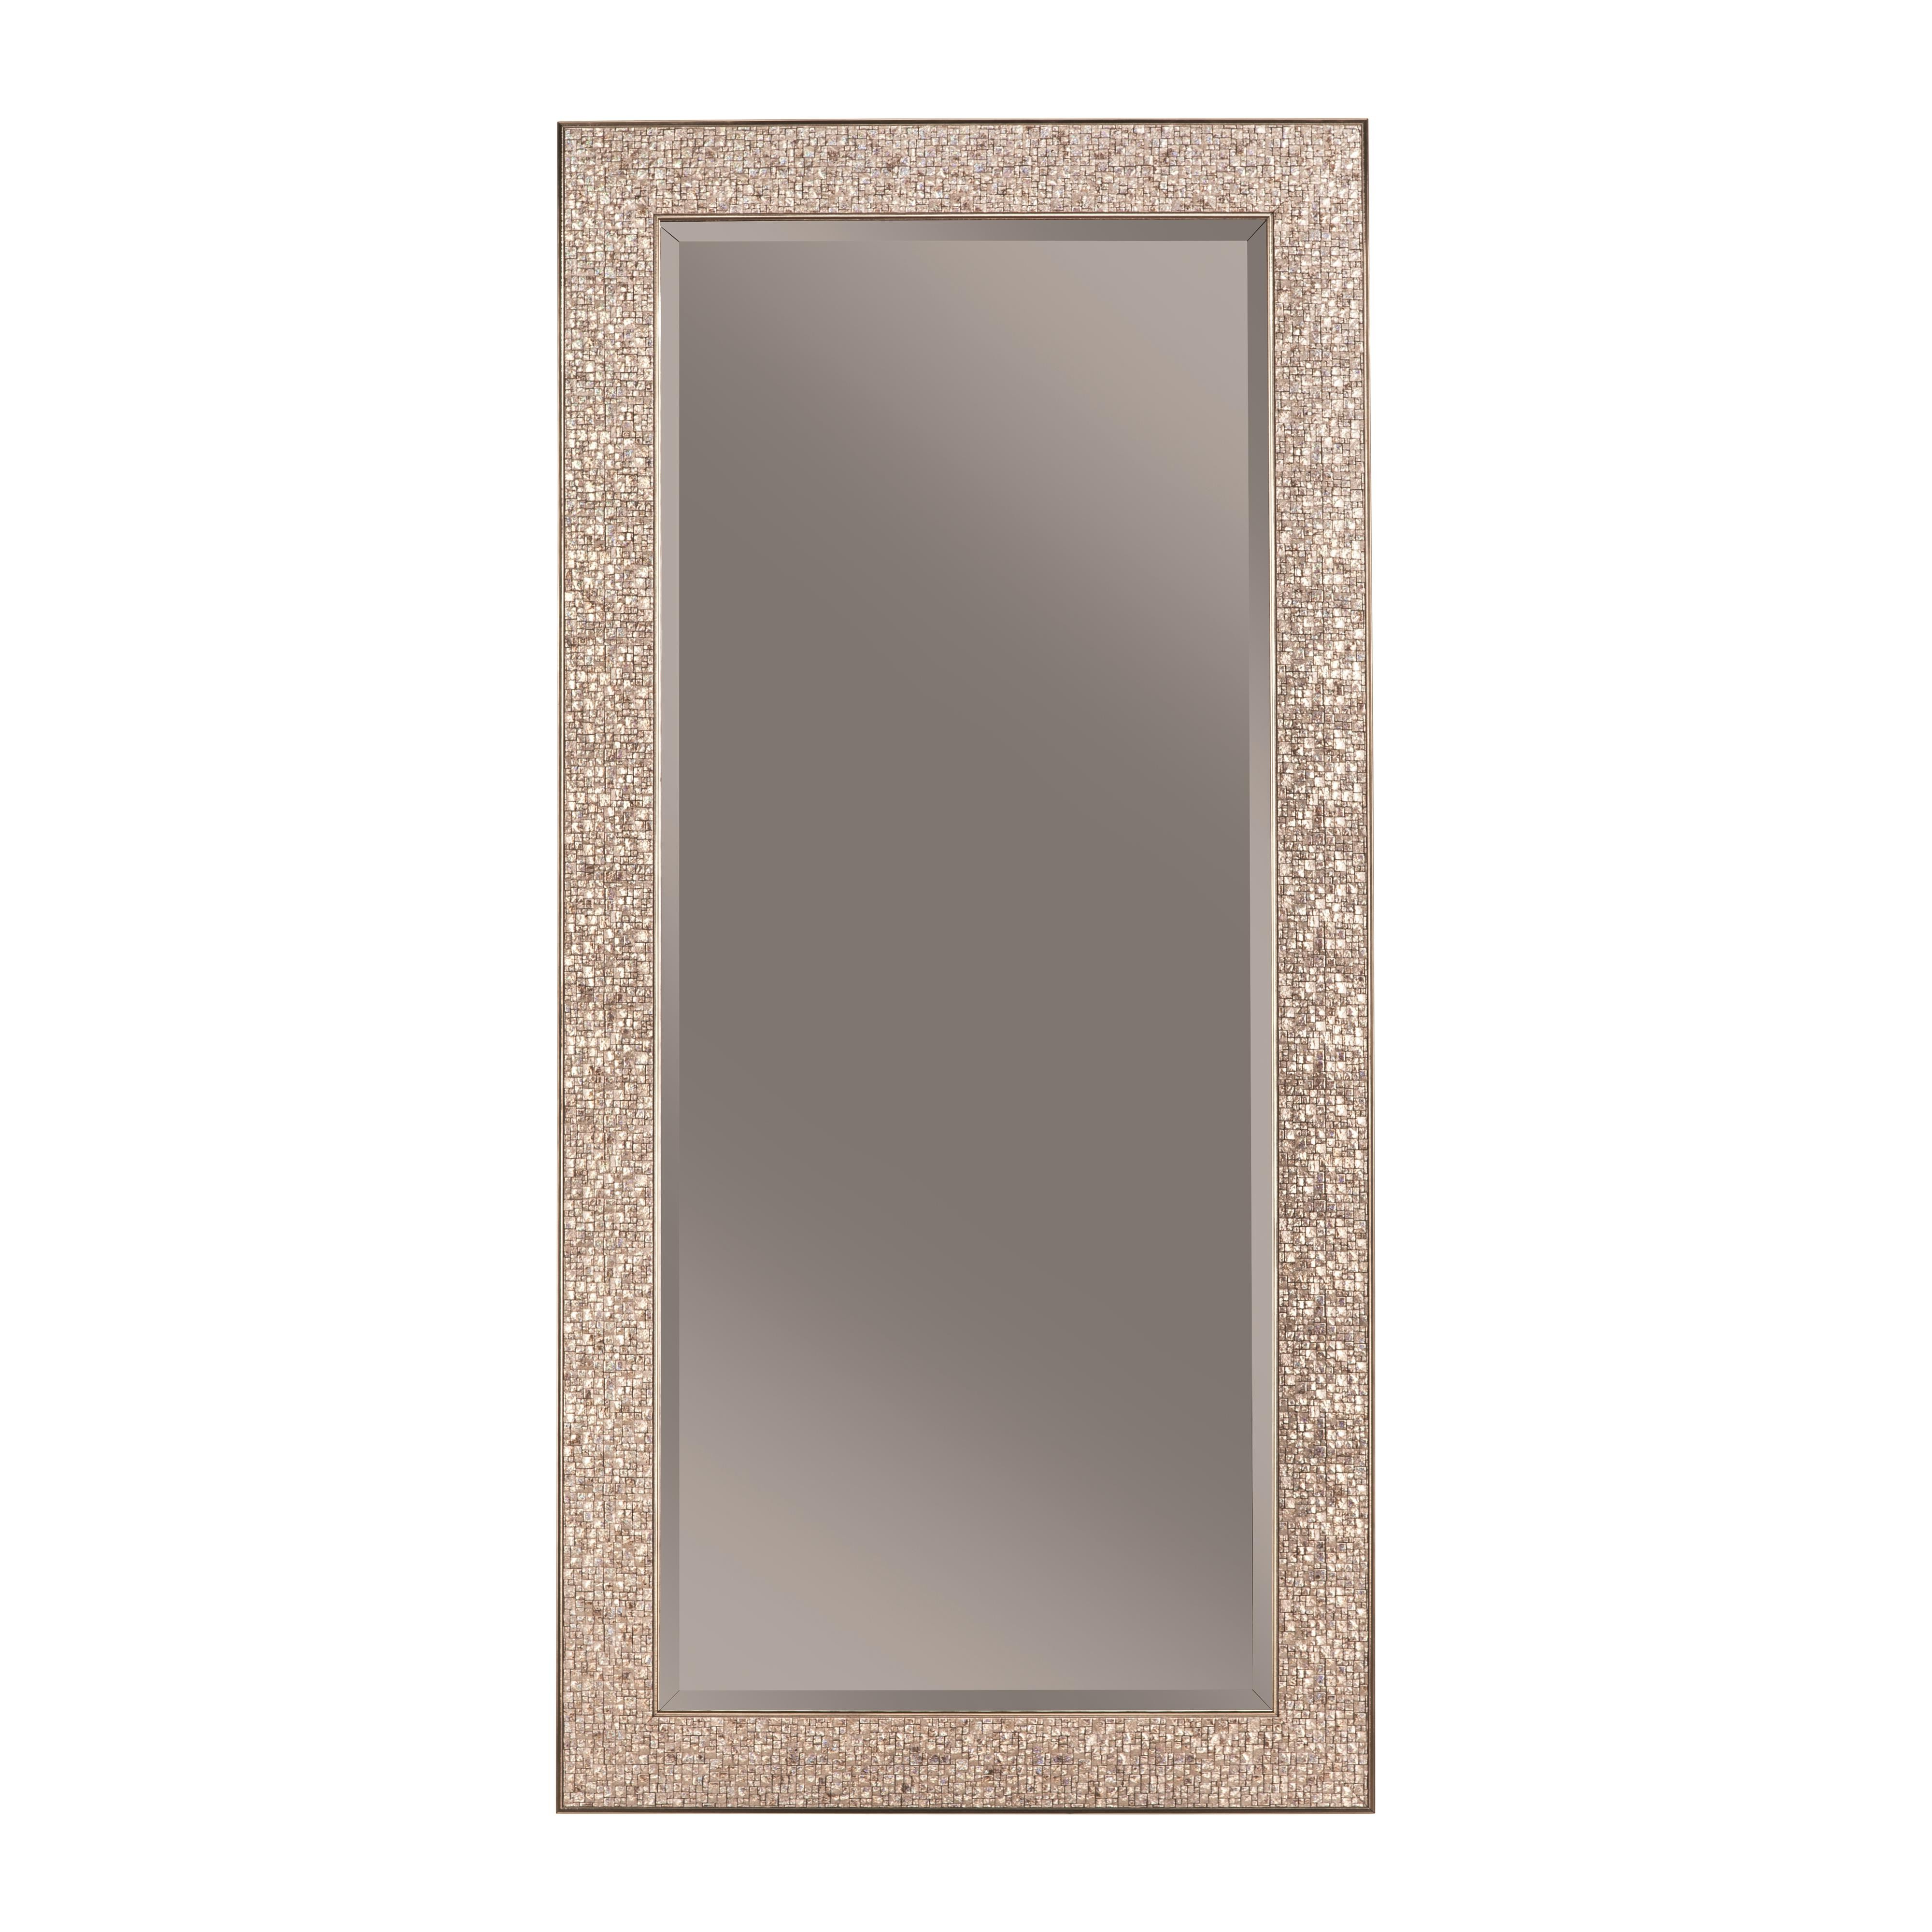 Silver Frame Accent Mirrors Pertaining To Newest Coaster 901997 Accent Mirrors Accent Mirror With Colored Mosaic (View 14 of 20)